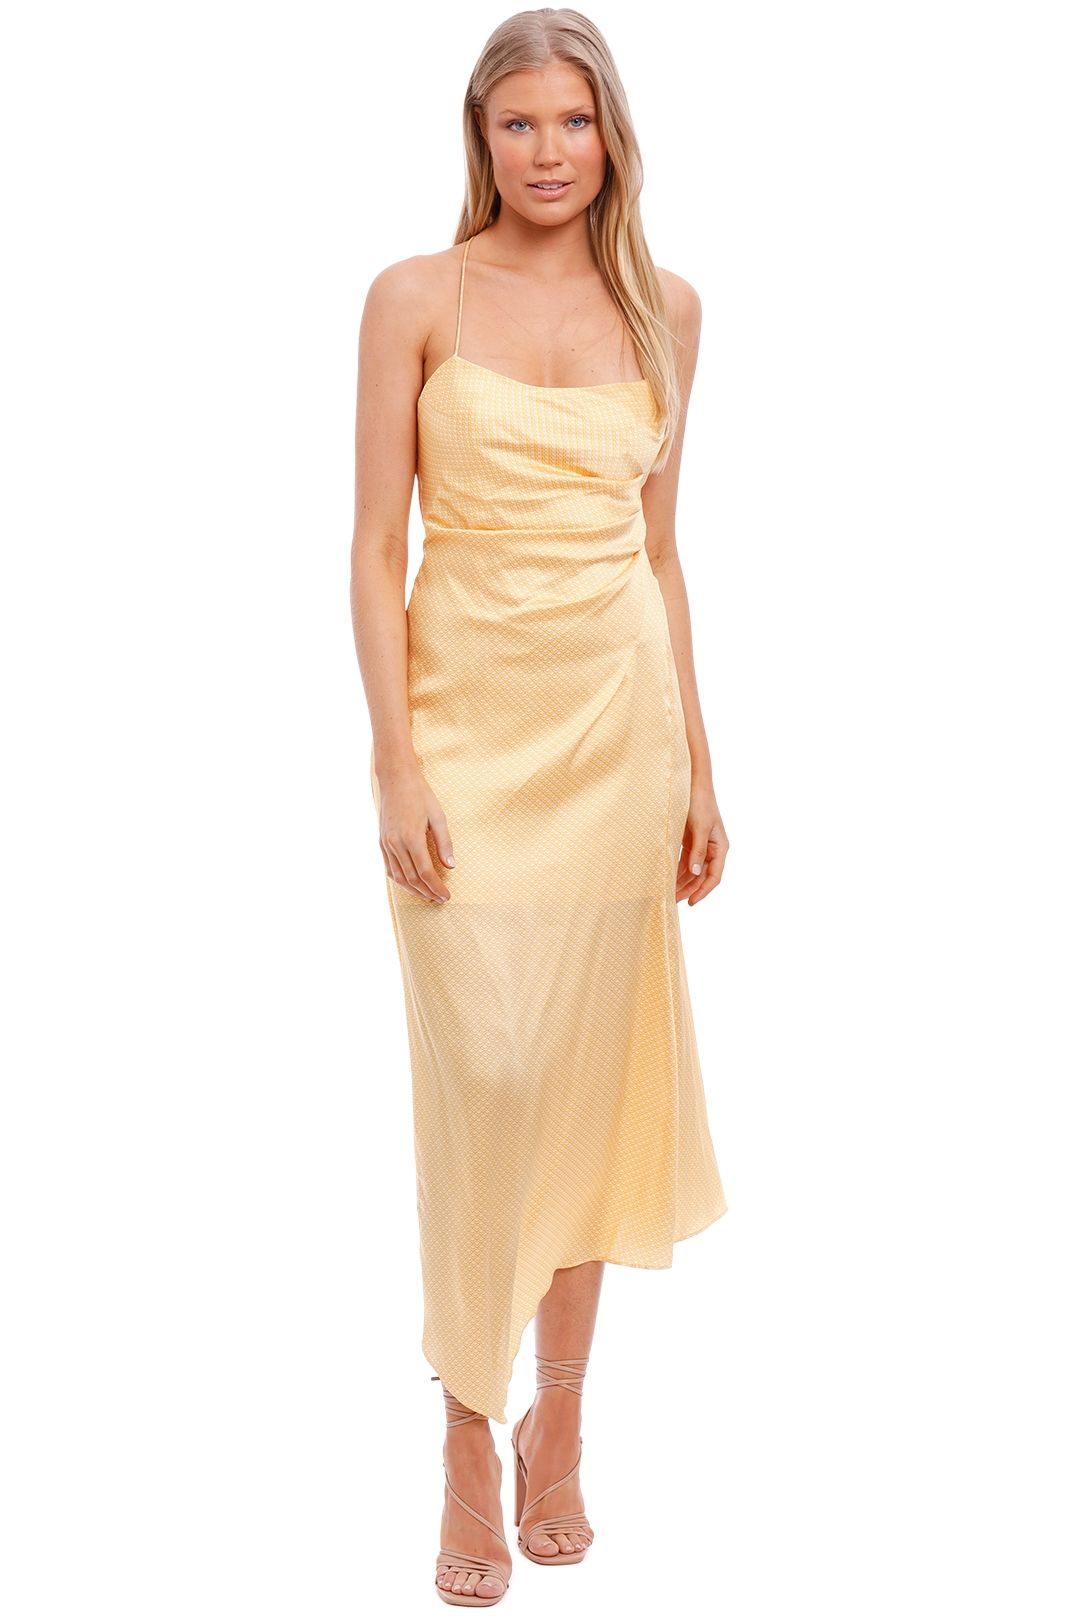 Significant Other One Another Dress Yellow